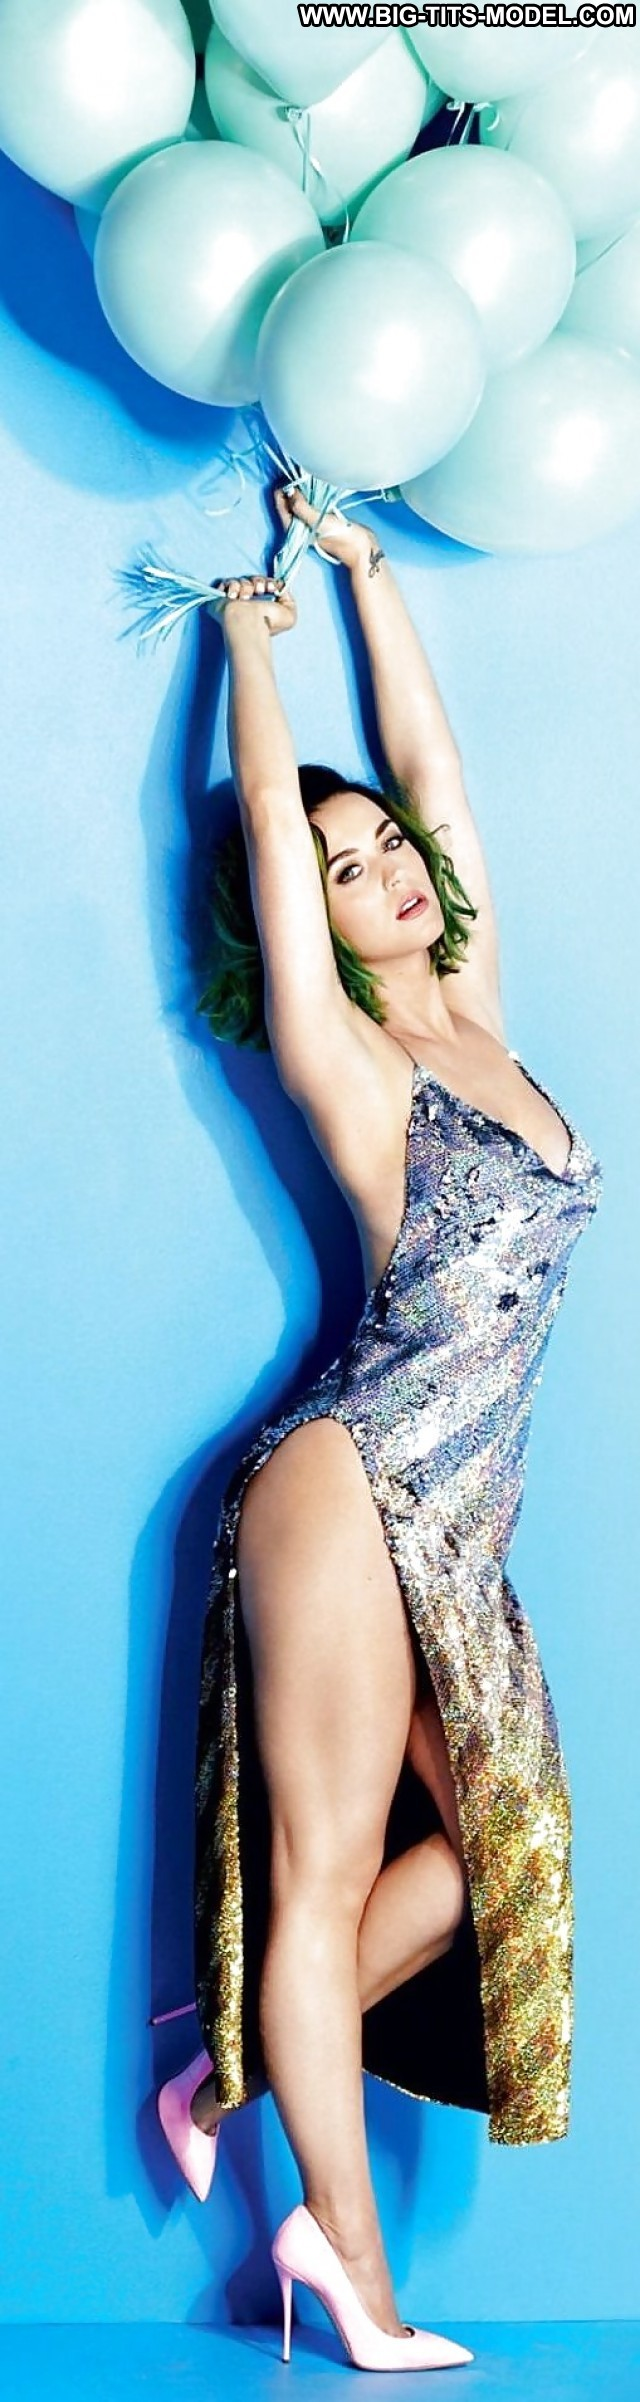 Katy Perry Private Pictures Big Boobs Hot Boobs Celebrity Brunette